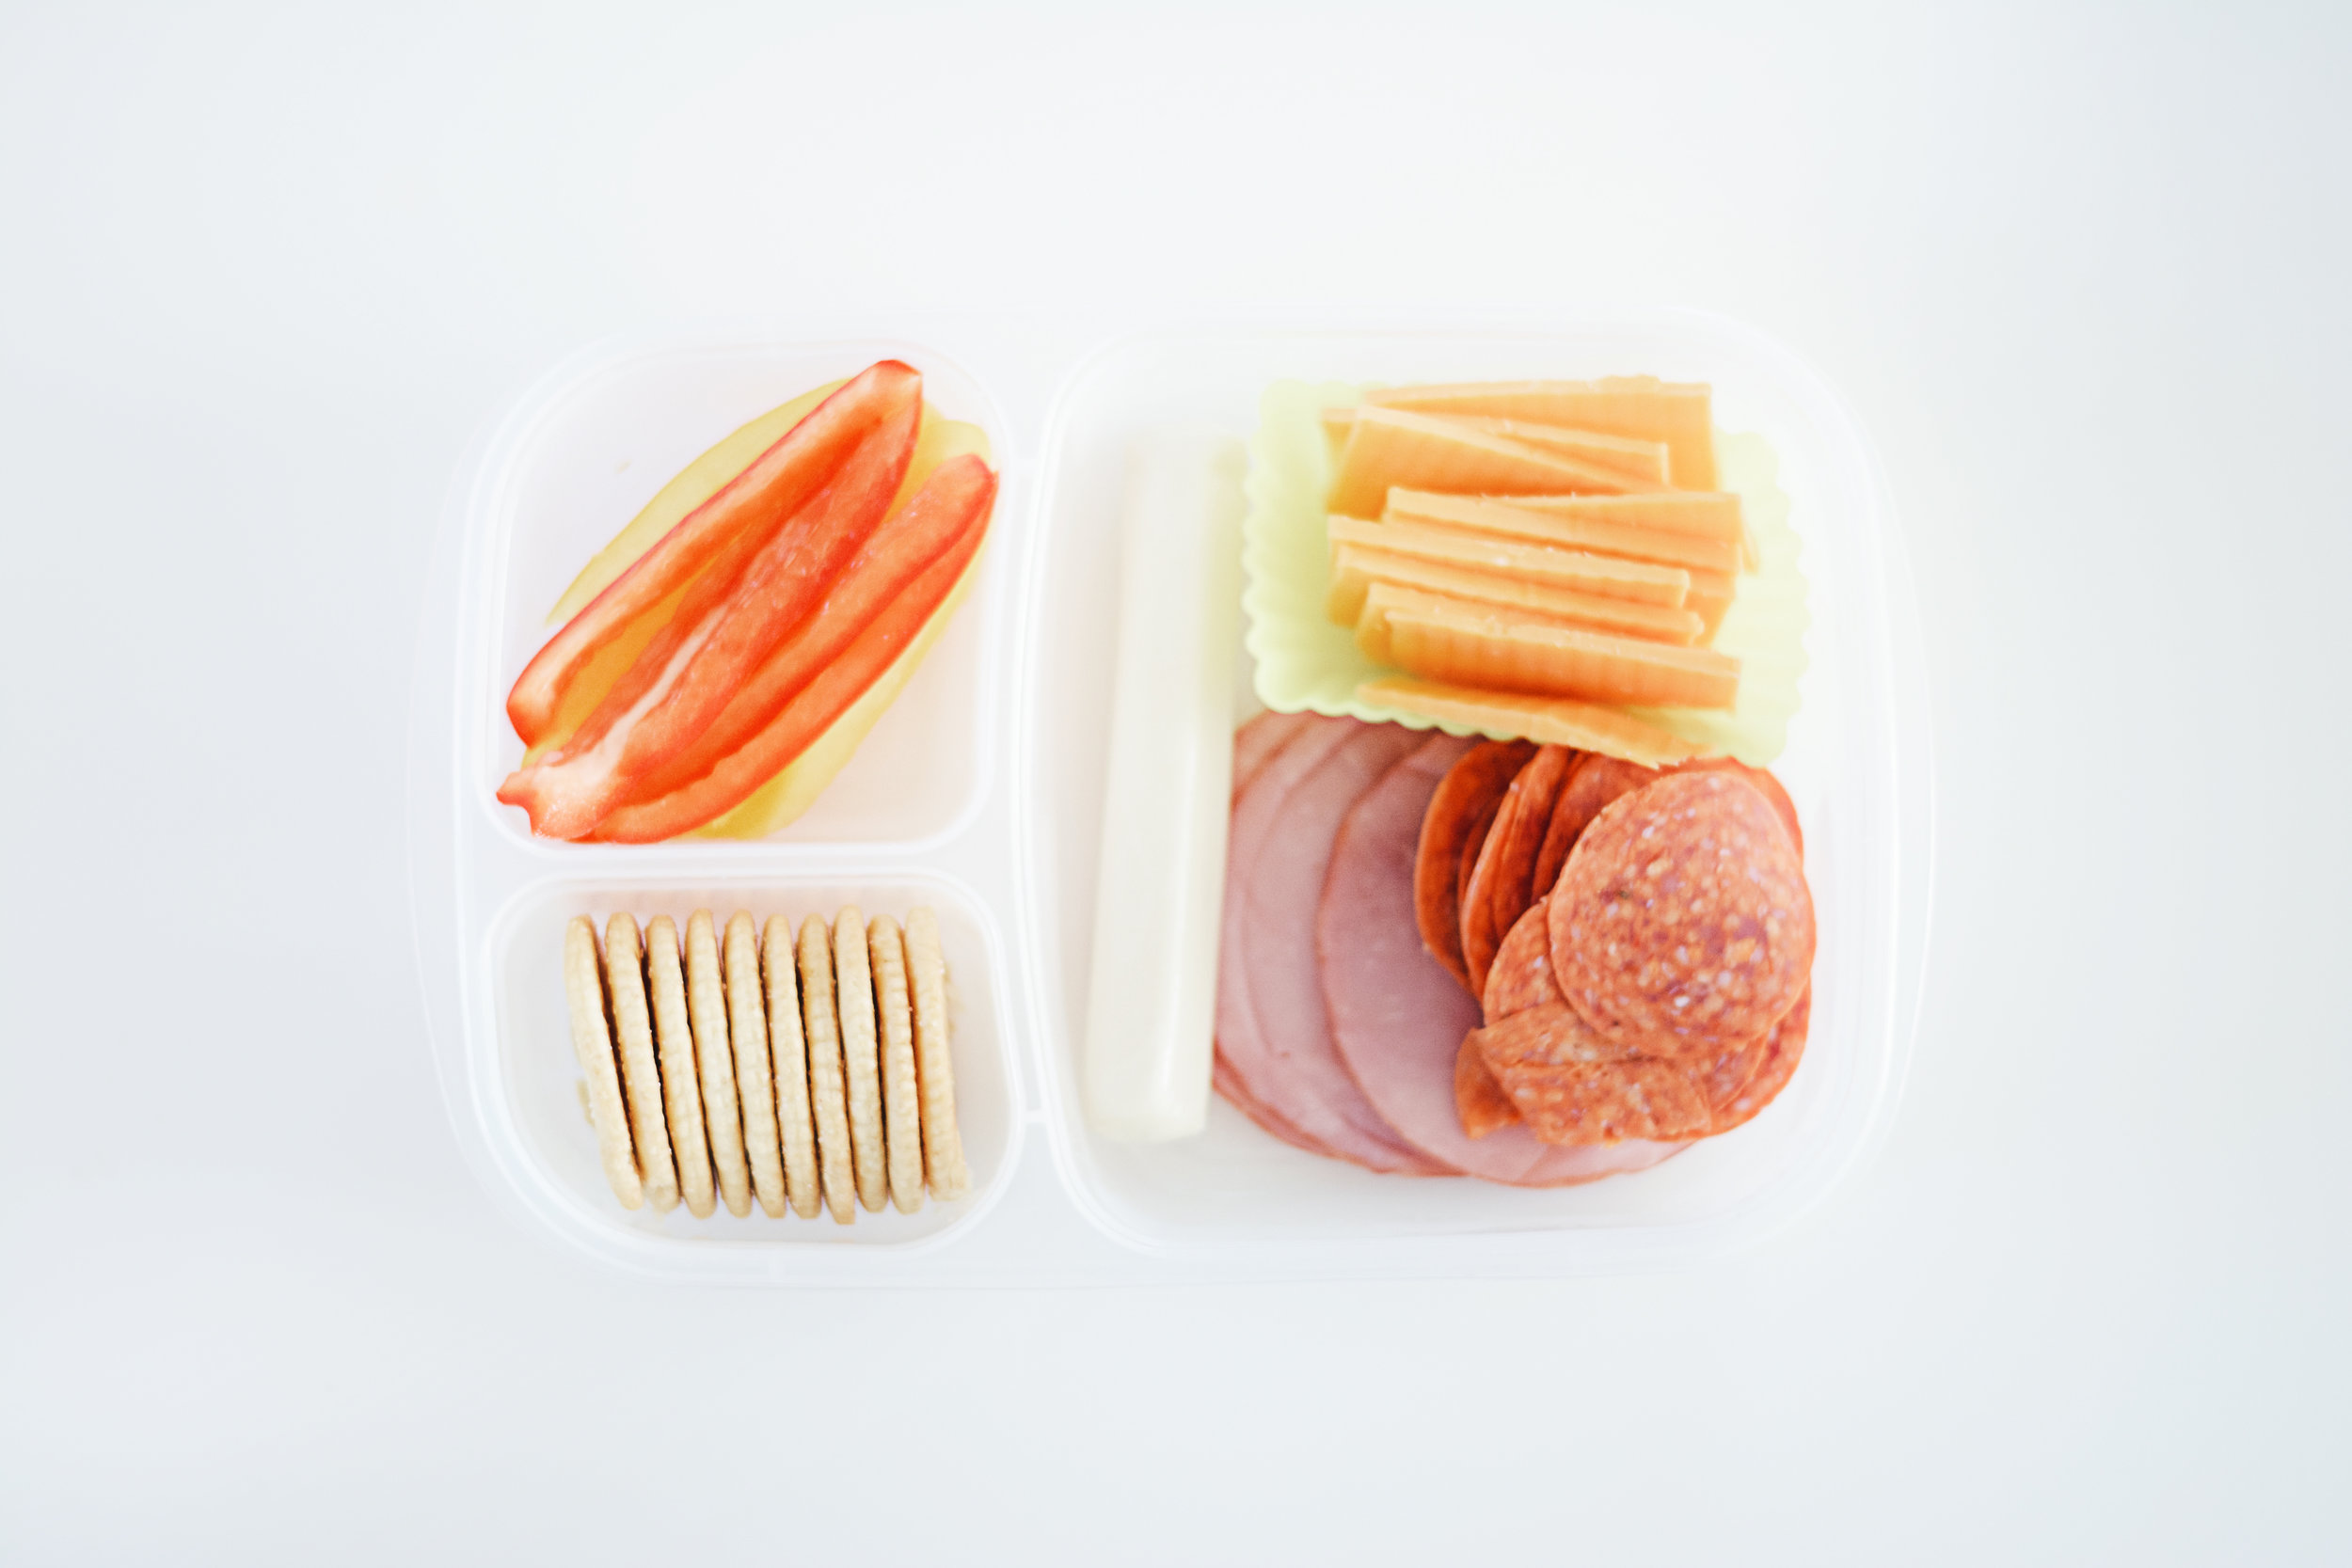 lunches11.jpg